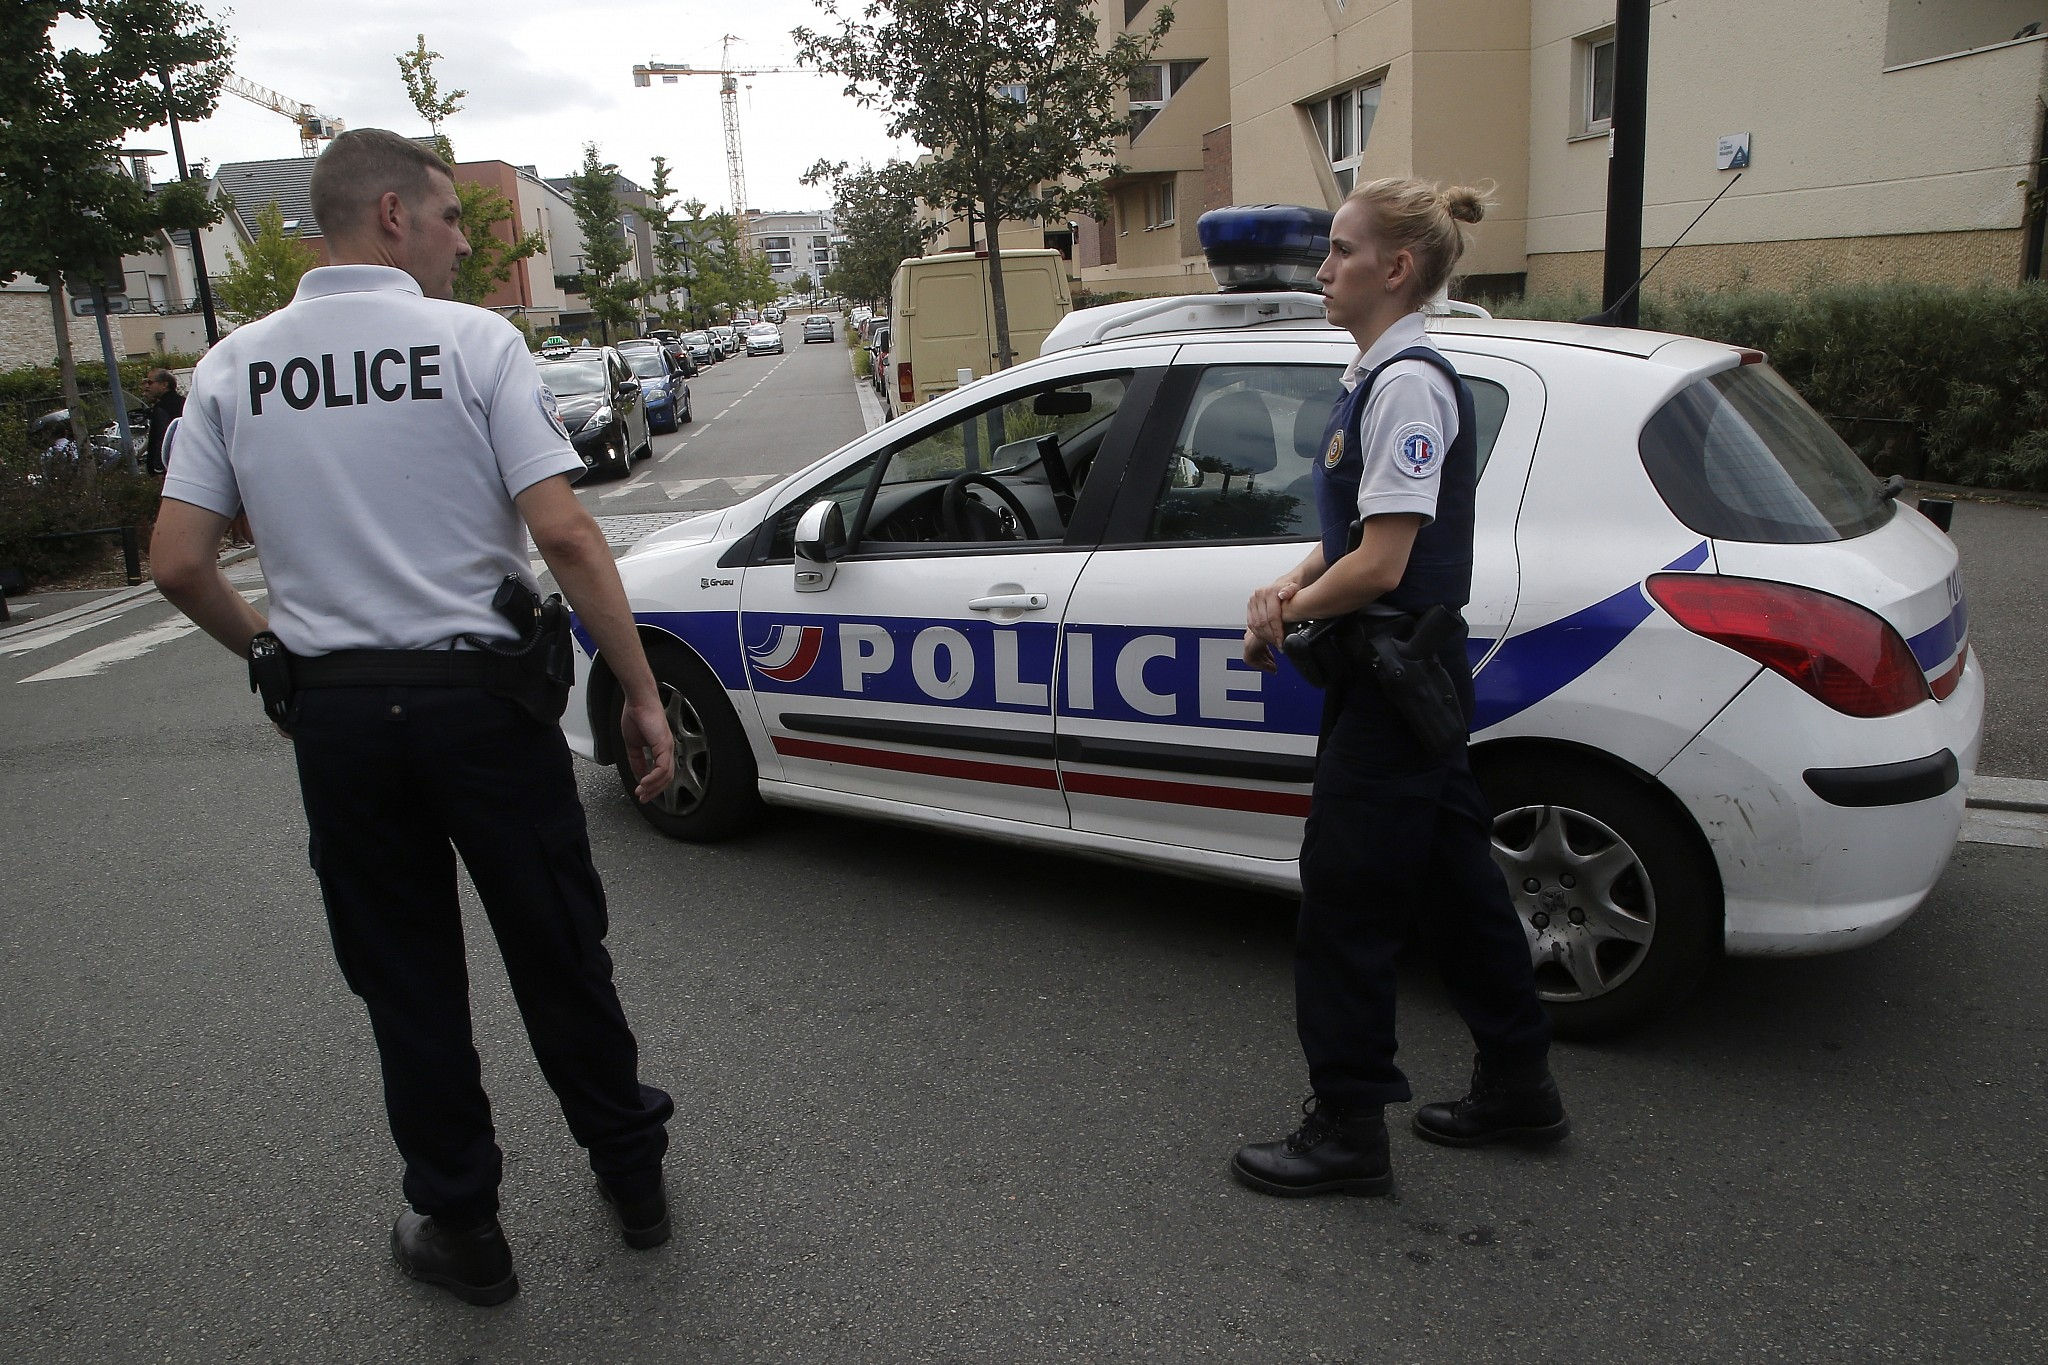 Two killed, one injured in knife attack near Paris